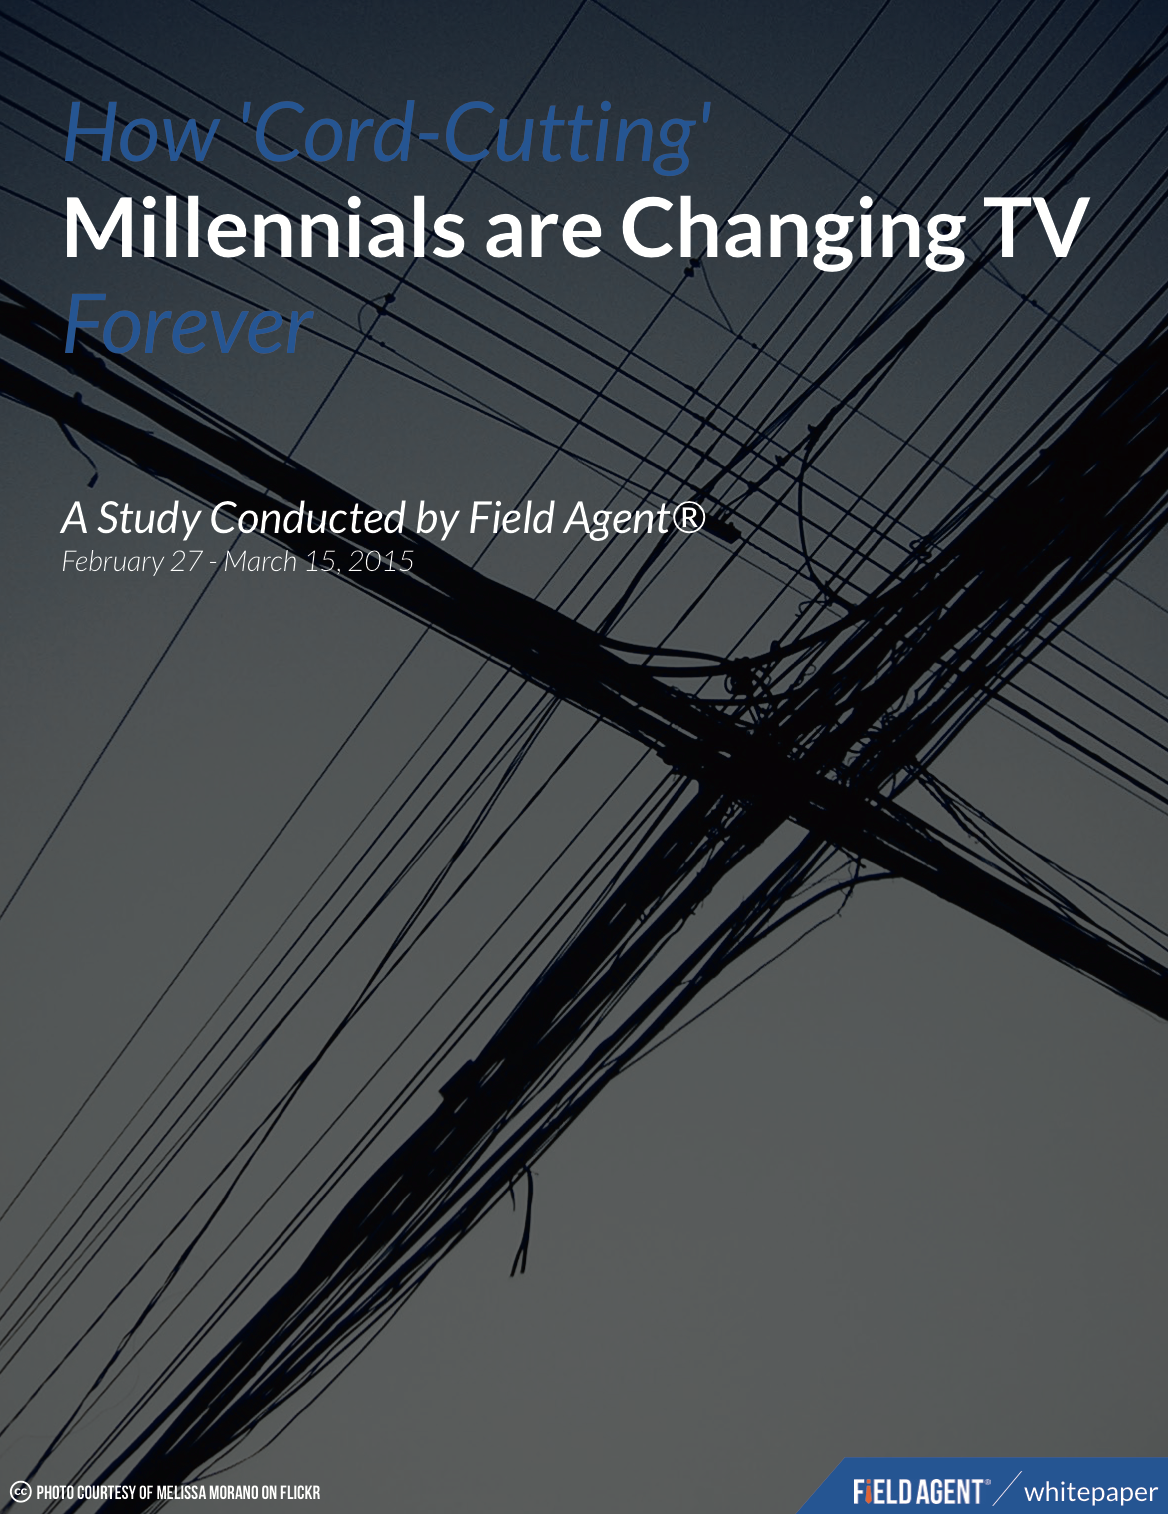 Cord-Cutting Millennials Change TV Forever - Field Agent Mobile Research Study